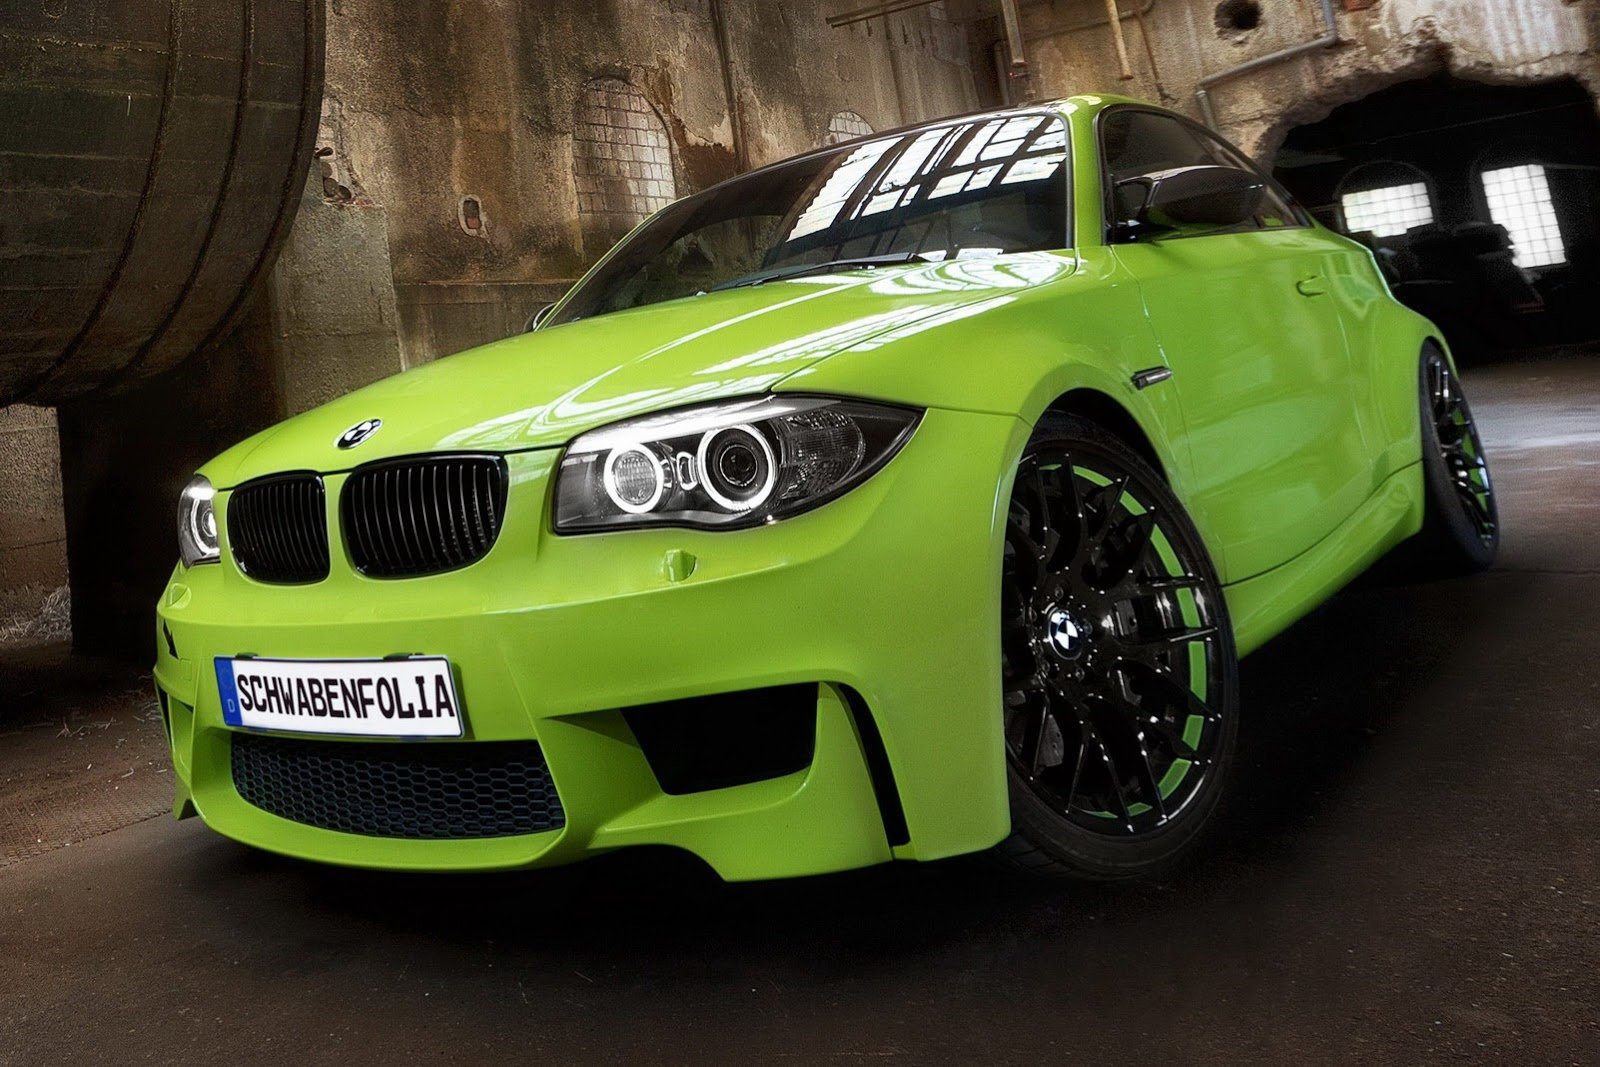 Bmw M Coupe In Irie Green From Schwaben Folia And Veight Video